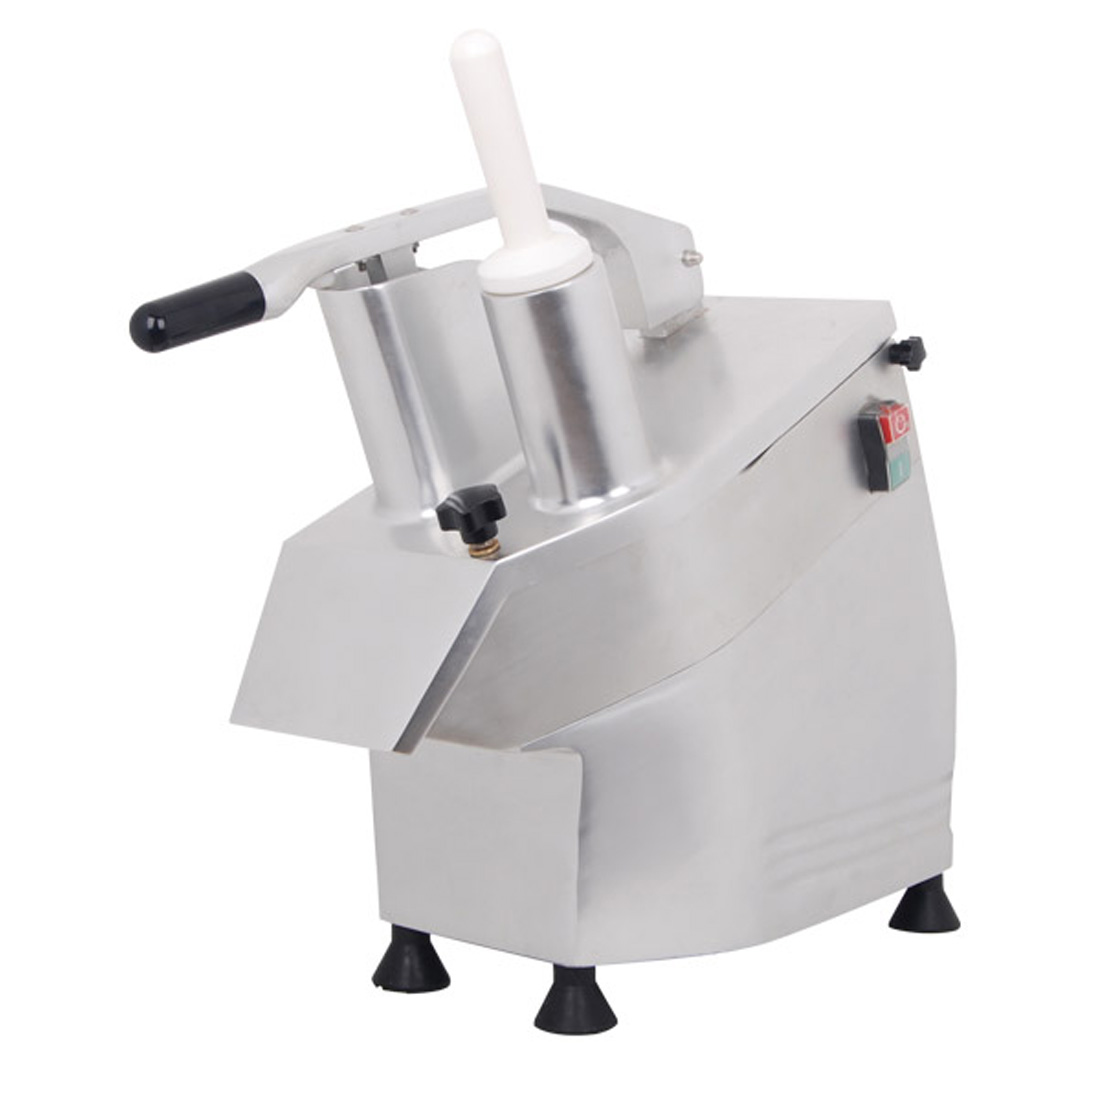 VC55MF Vegetable Cutter